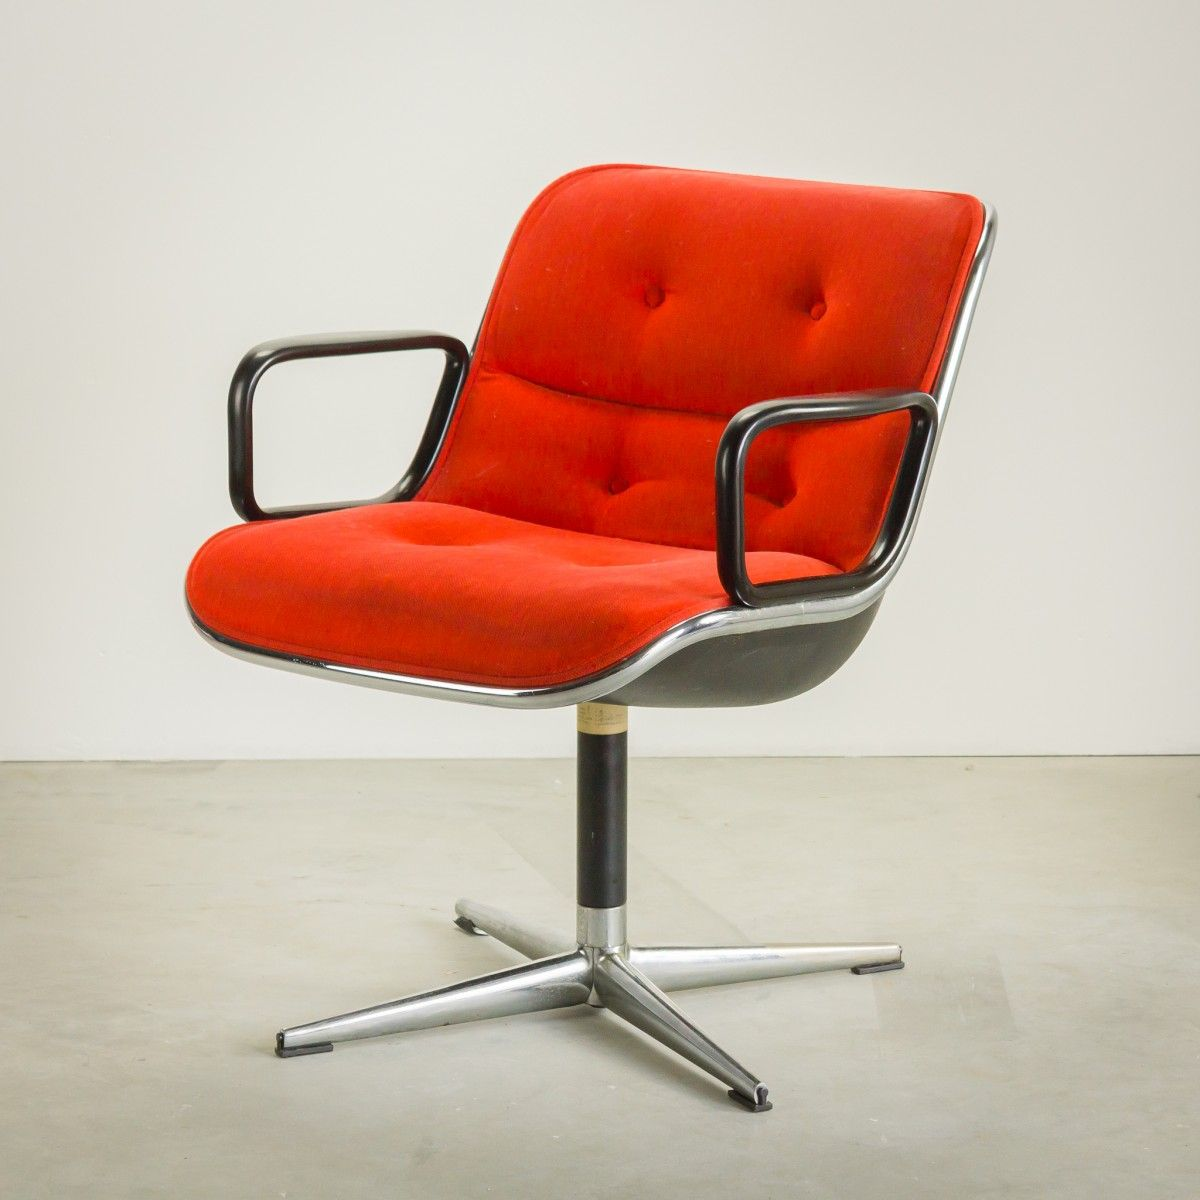 red-velvet-executive-chair-by-charles-pollock-for-knoll